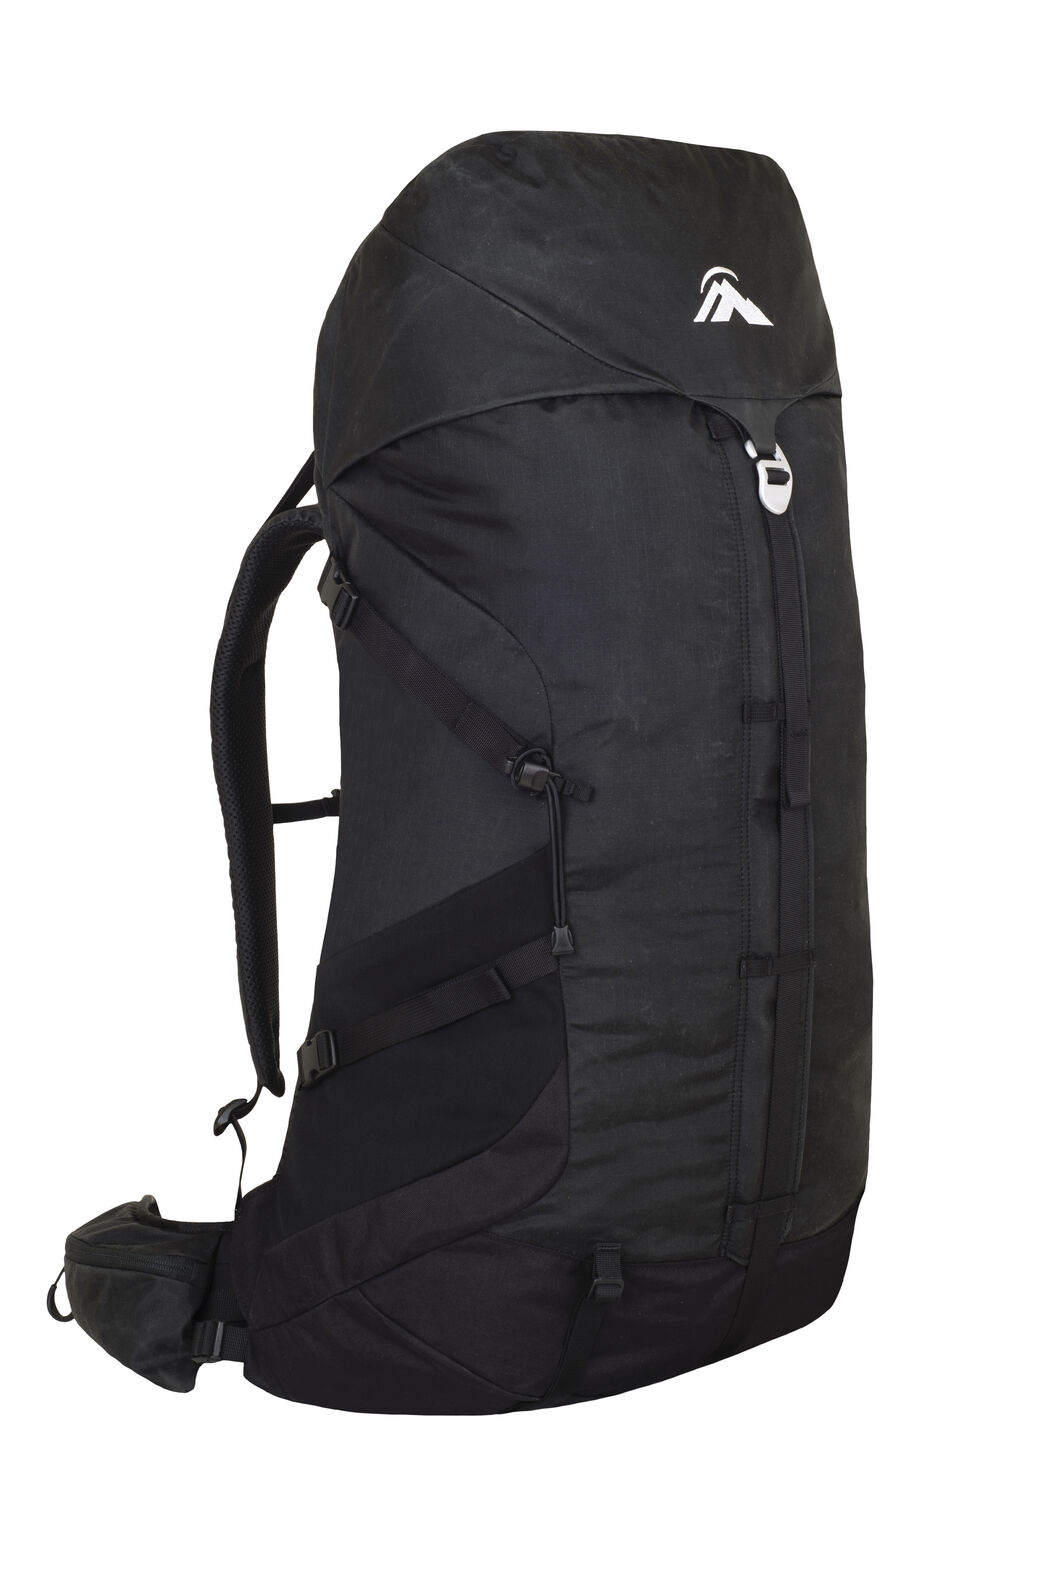 Macpac Rhyolite 47L Hiking Pack, Black, hi-res